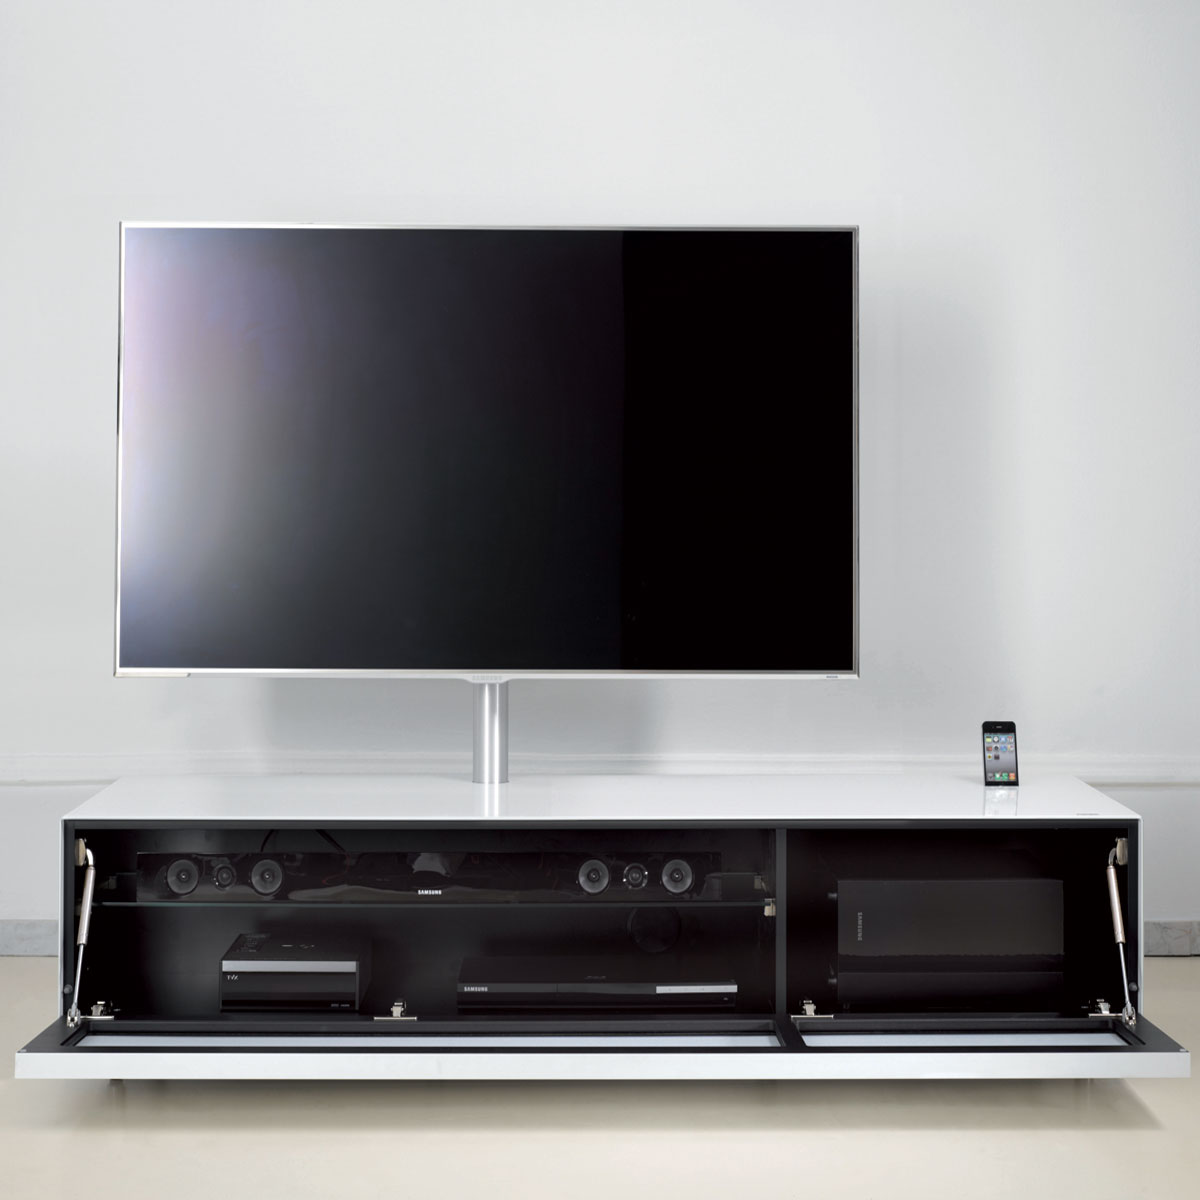 hifi m bel archive seite 2 von 4 tv m bel und hifi. Black Bedroom Furniture Sets. Home Design Ideas